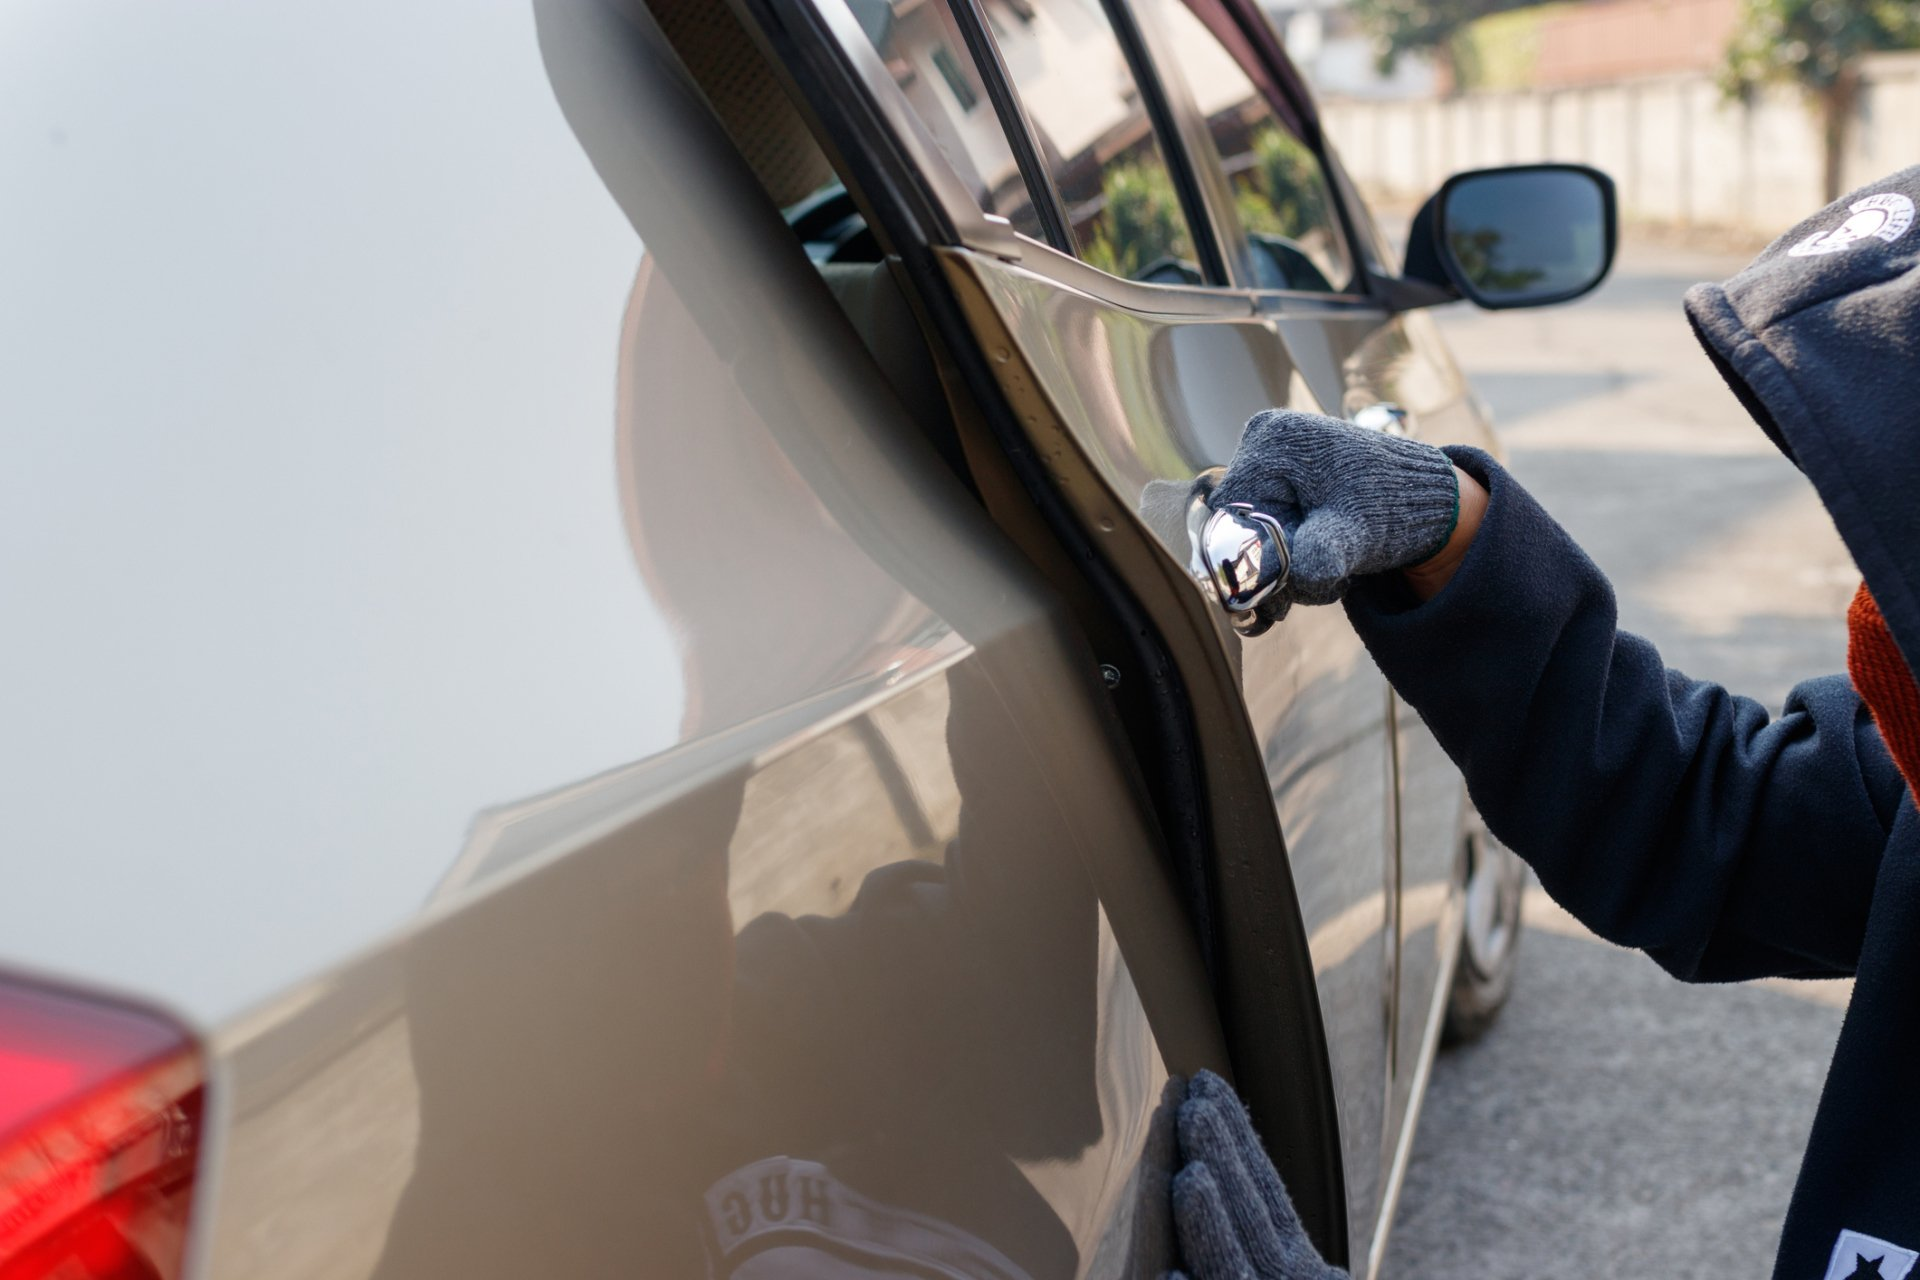 Theft From Your Car: How Do You Report It?